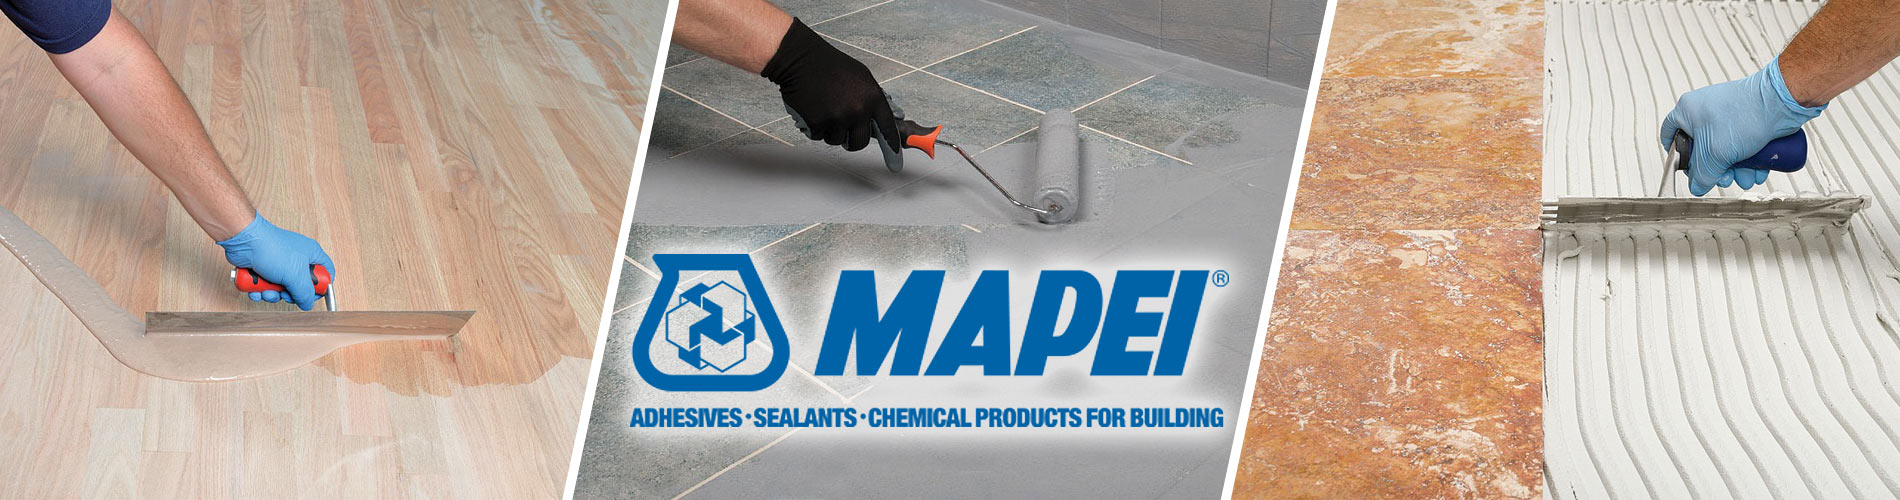 Mapei® | Adhesives, Sealants, Chemical Products For Building